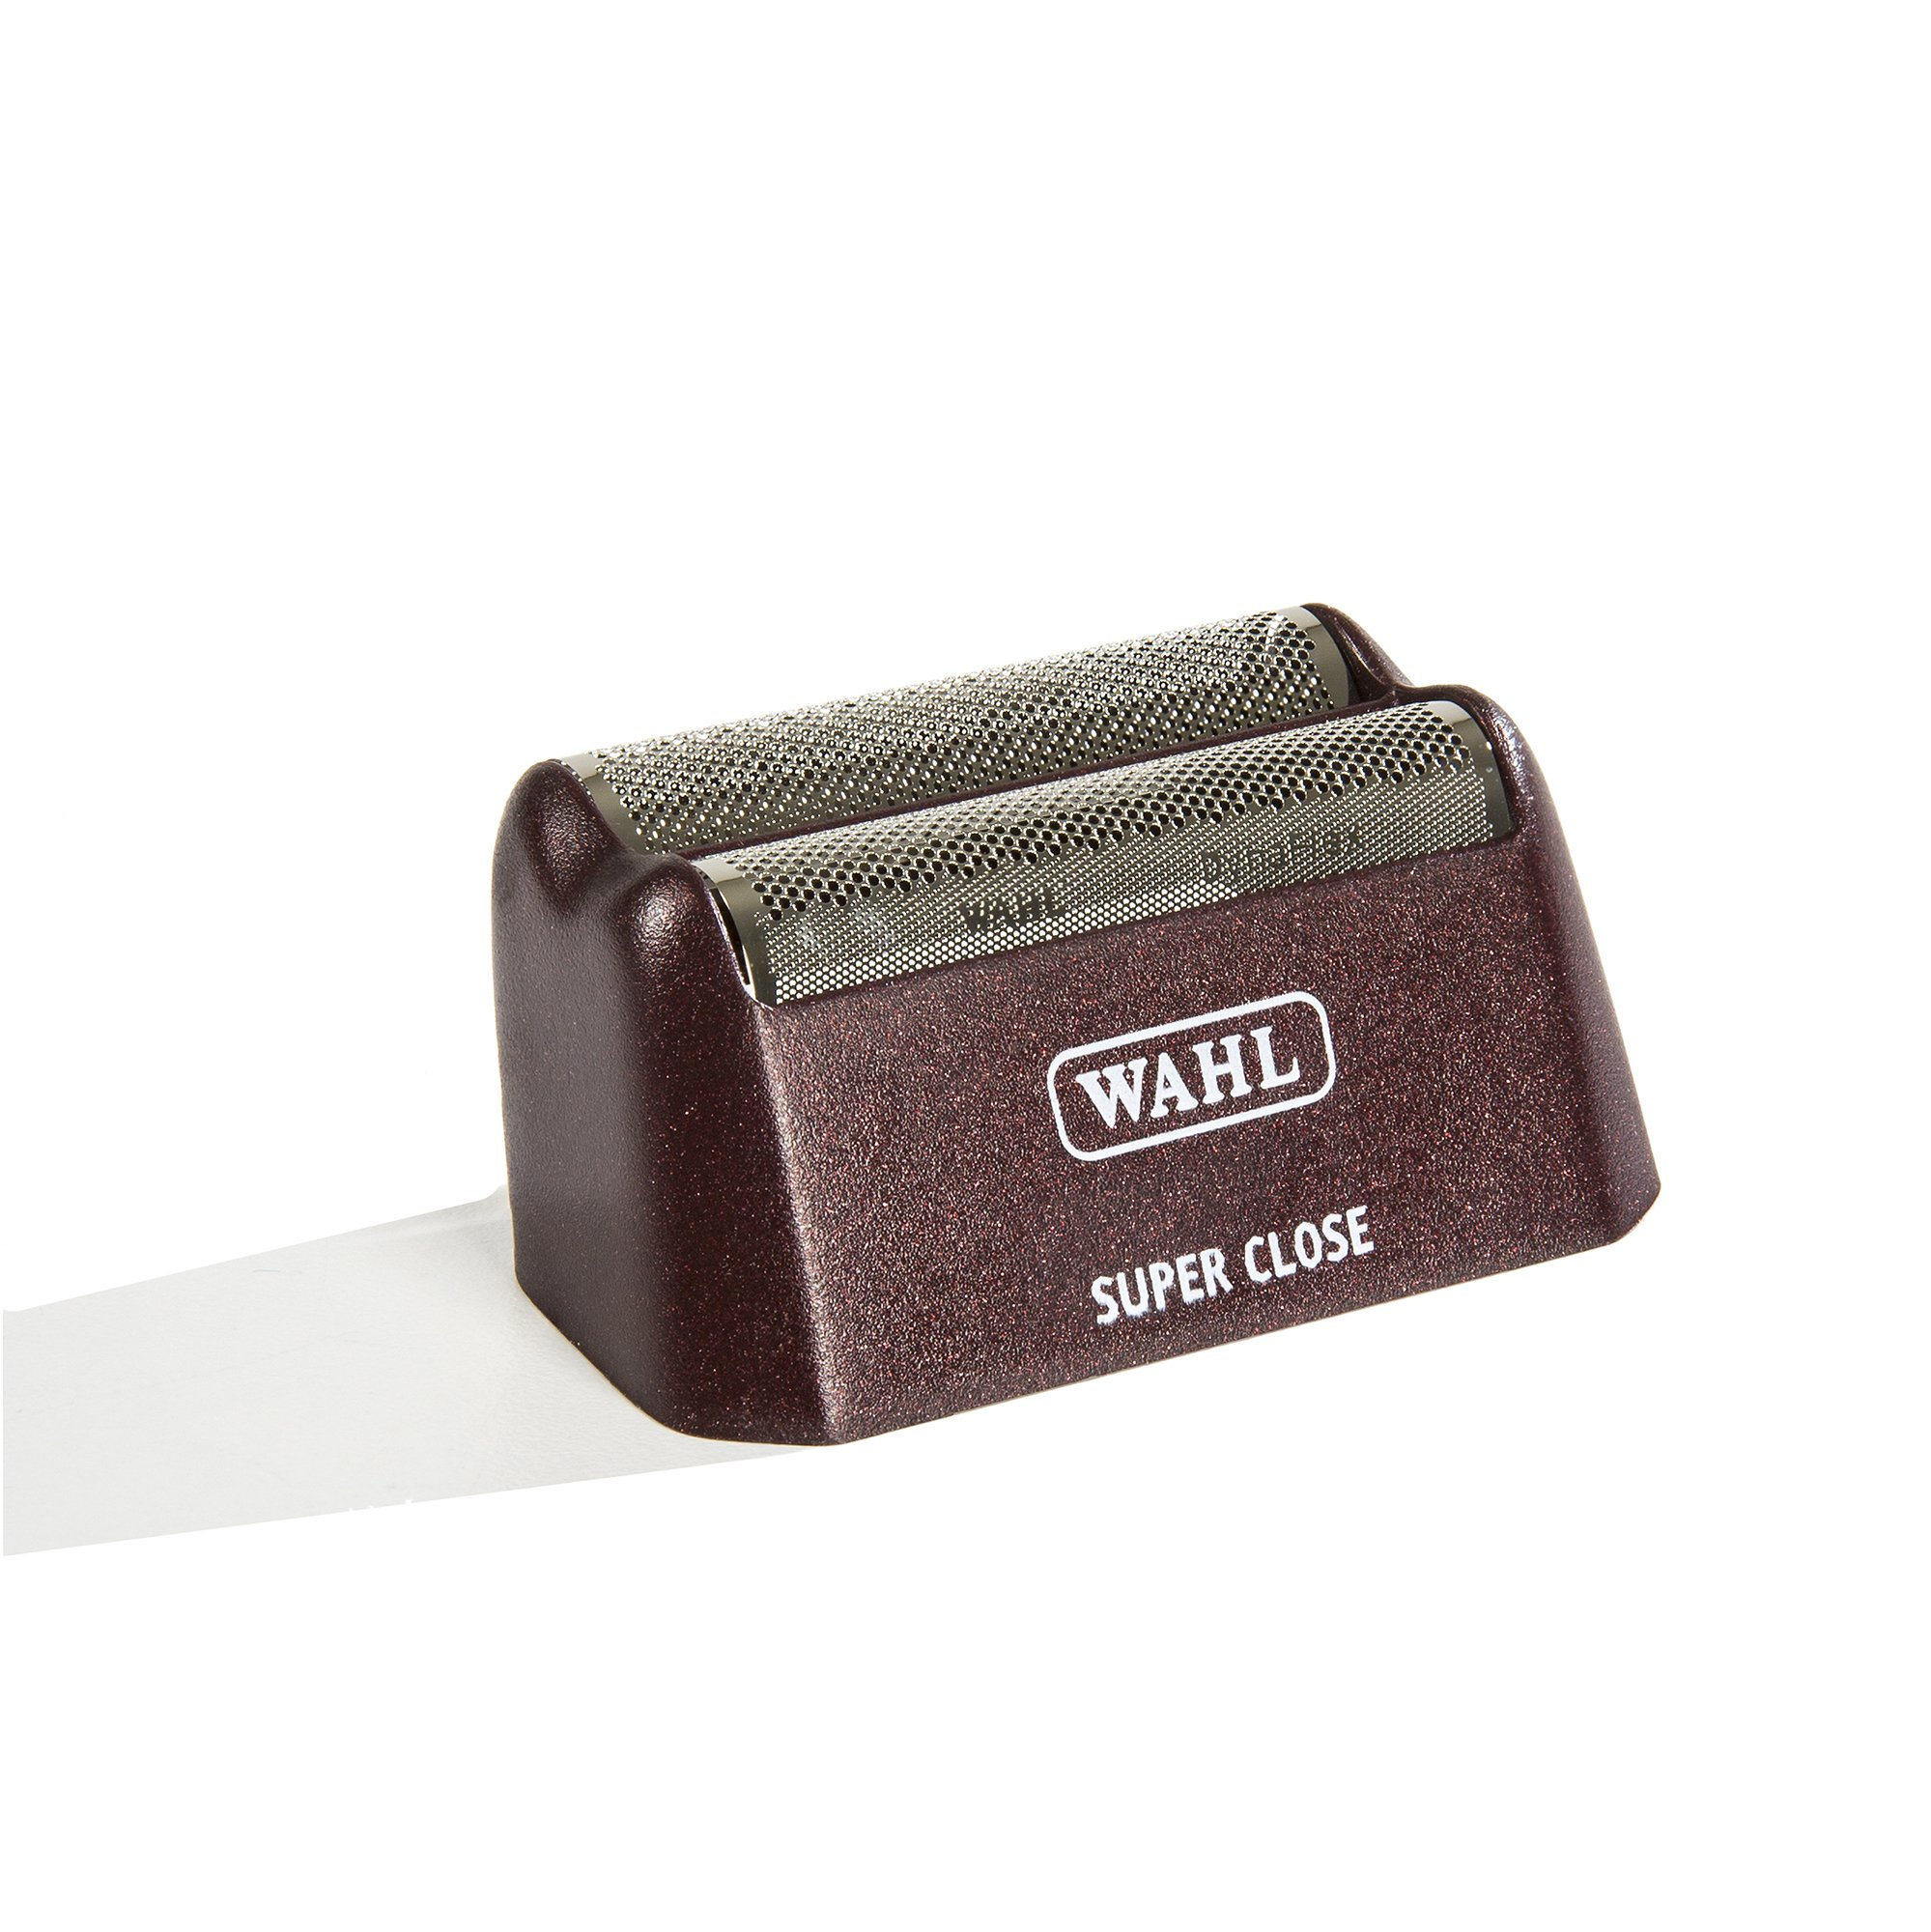 Wahl Professional 5-Star Series #7031-400 Replacement Foil Assembly – Red & Silver – Super Close by Wahl Professional (Image #3)